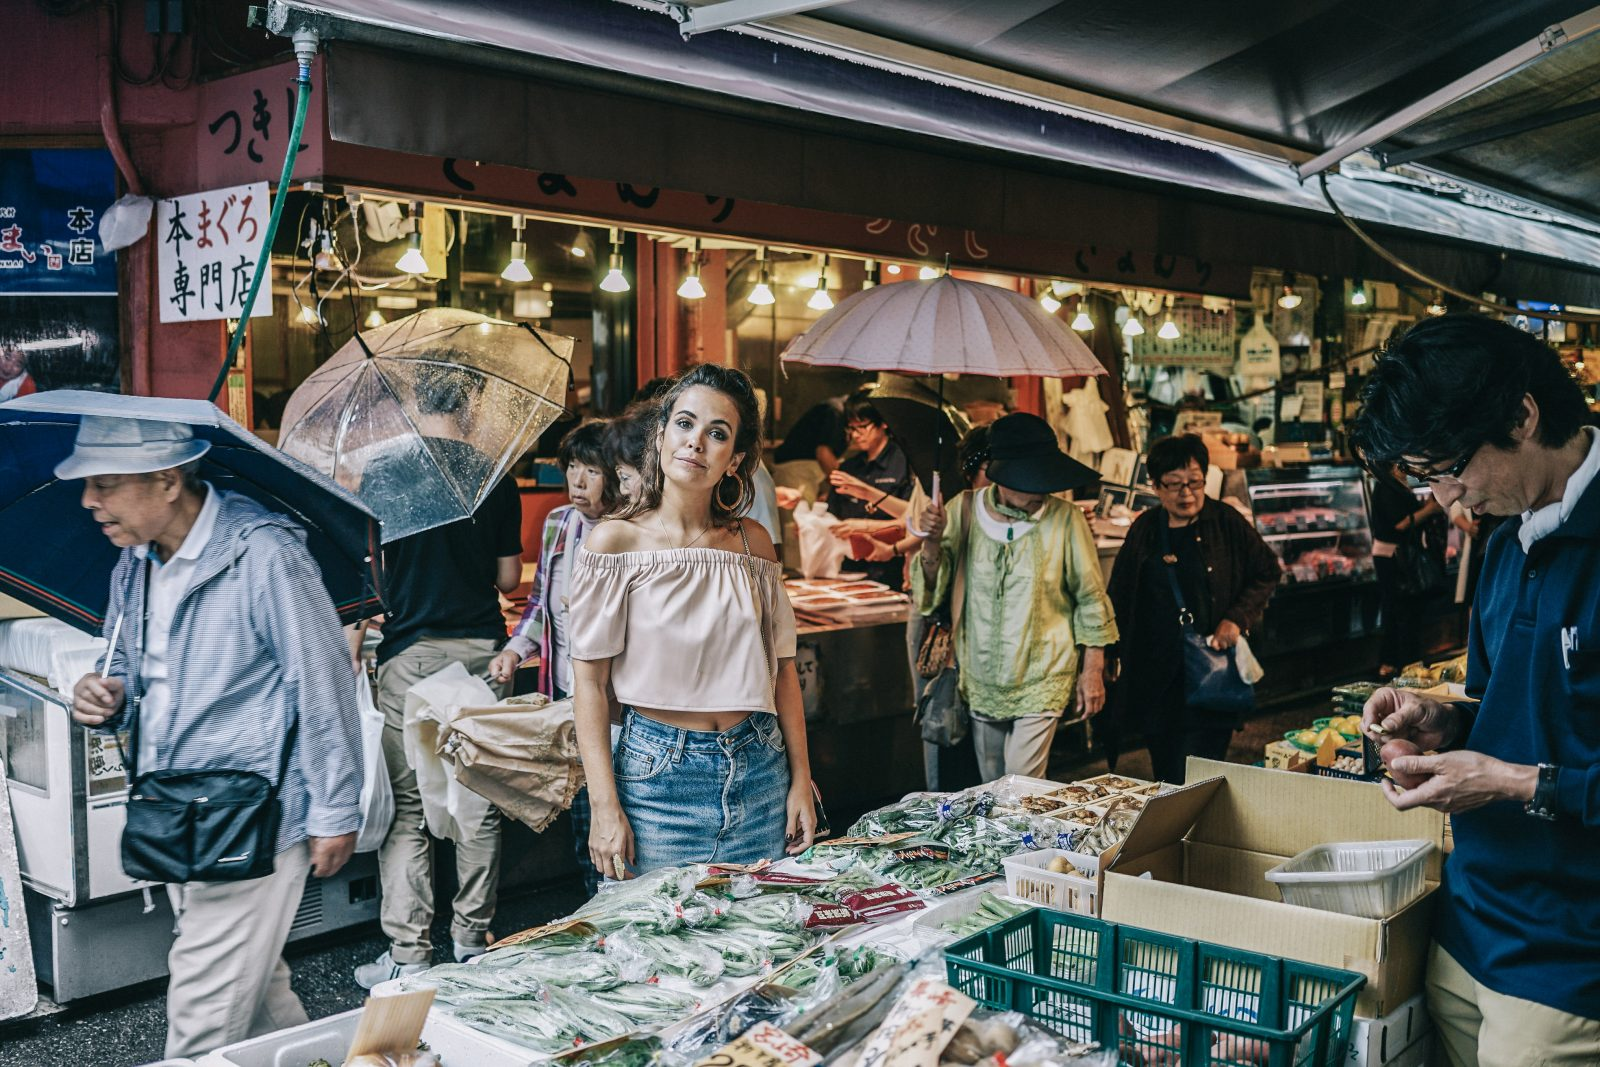 Tokyo_Travel_Guide-Fish_Market-Harajuku-Levis_Denim_Skirt-Off_The_Shoulders_Top-YSL_Sneakers-Outfit-Collage_Vintage-Street_Style-70